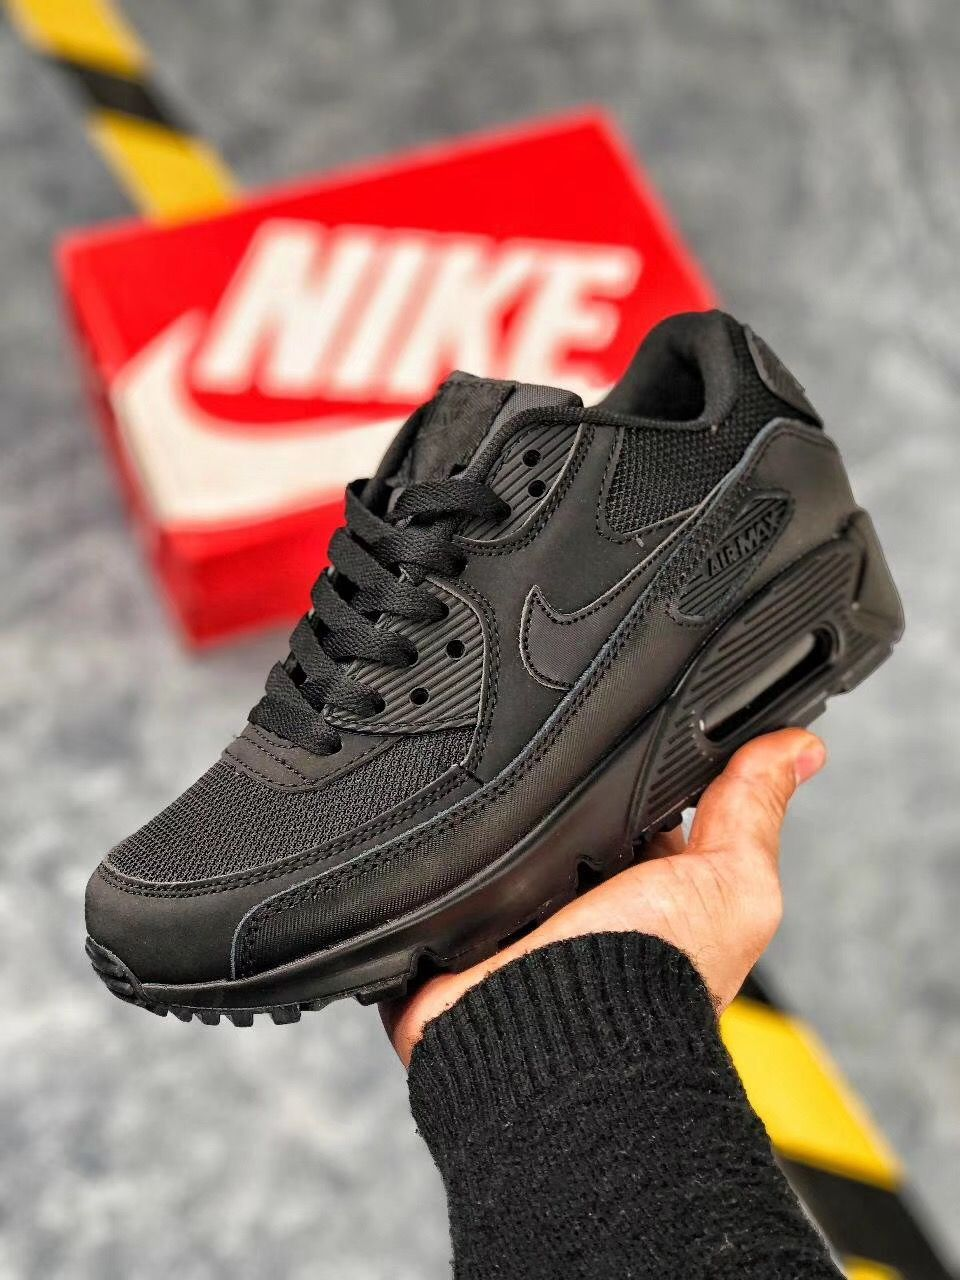 Pin about Nike sportswear, Nike shoes and Hype shoes on